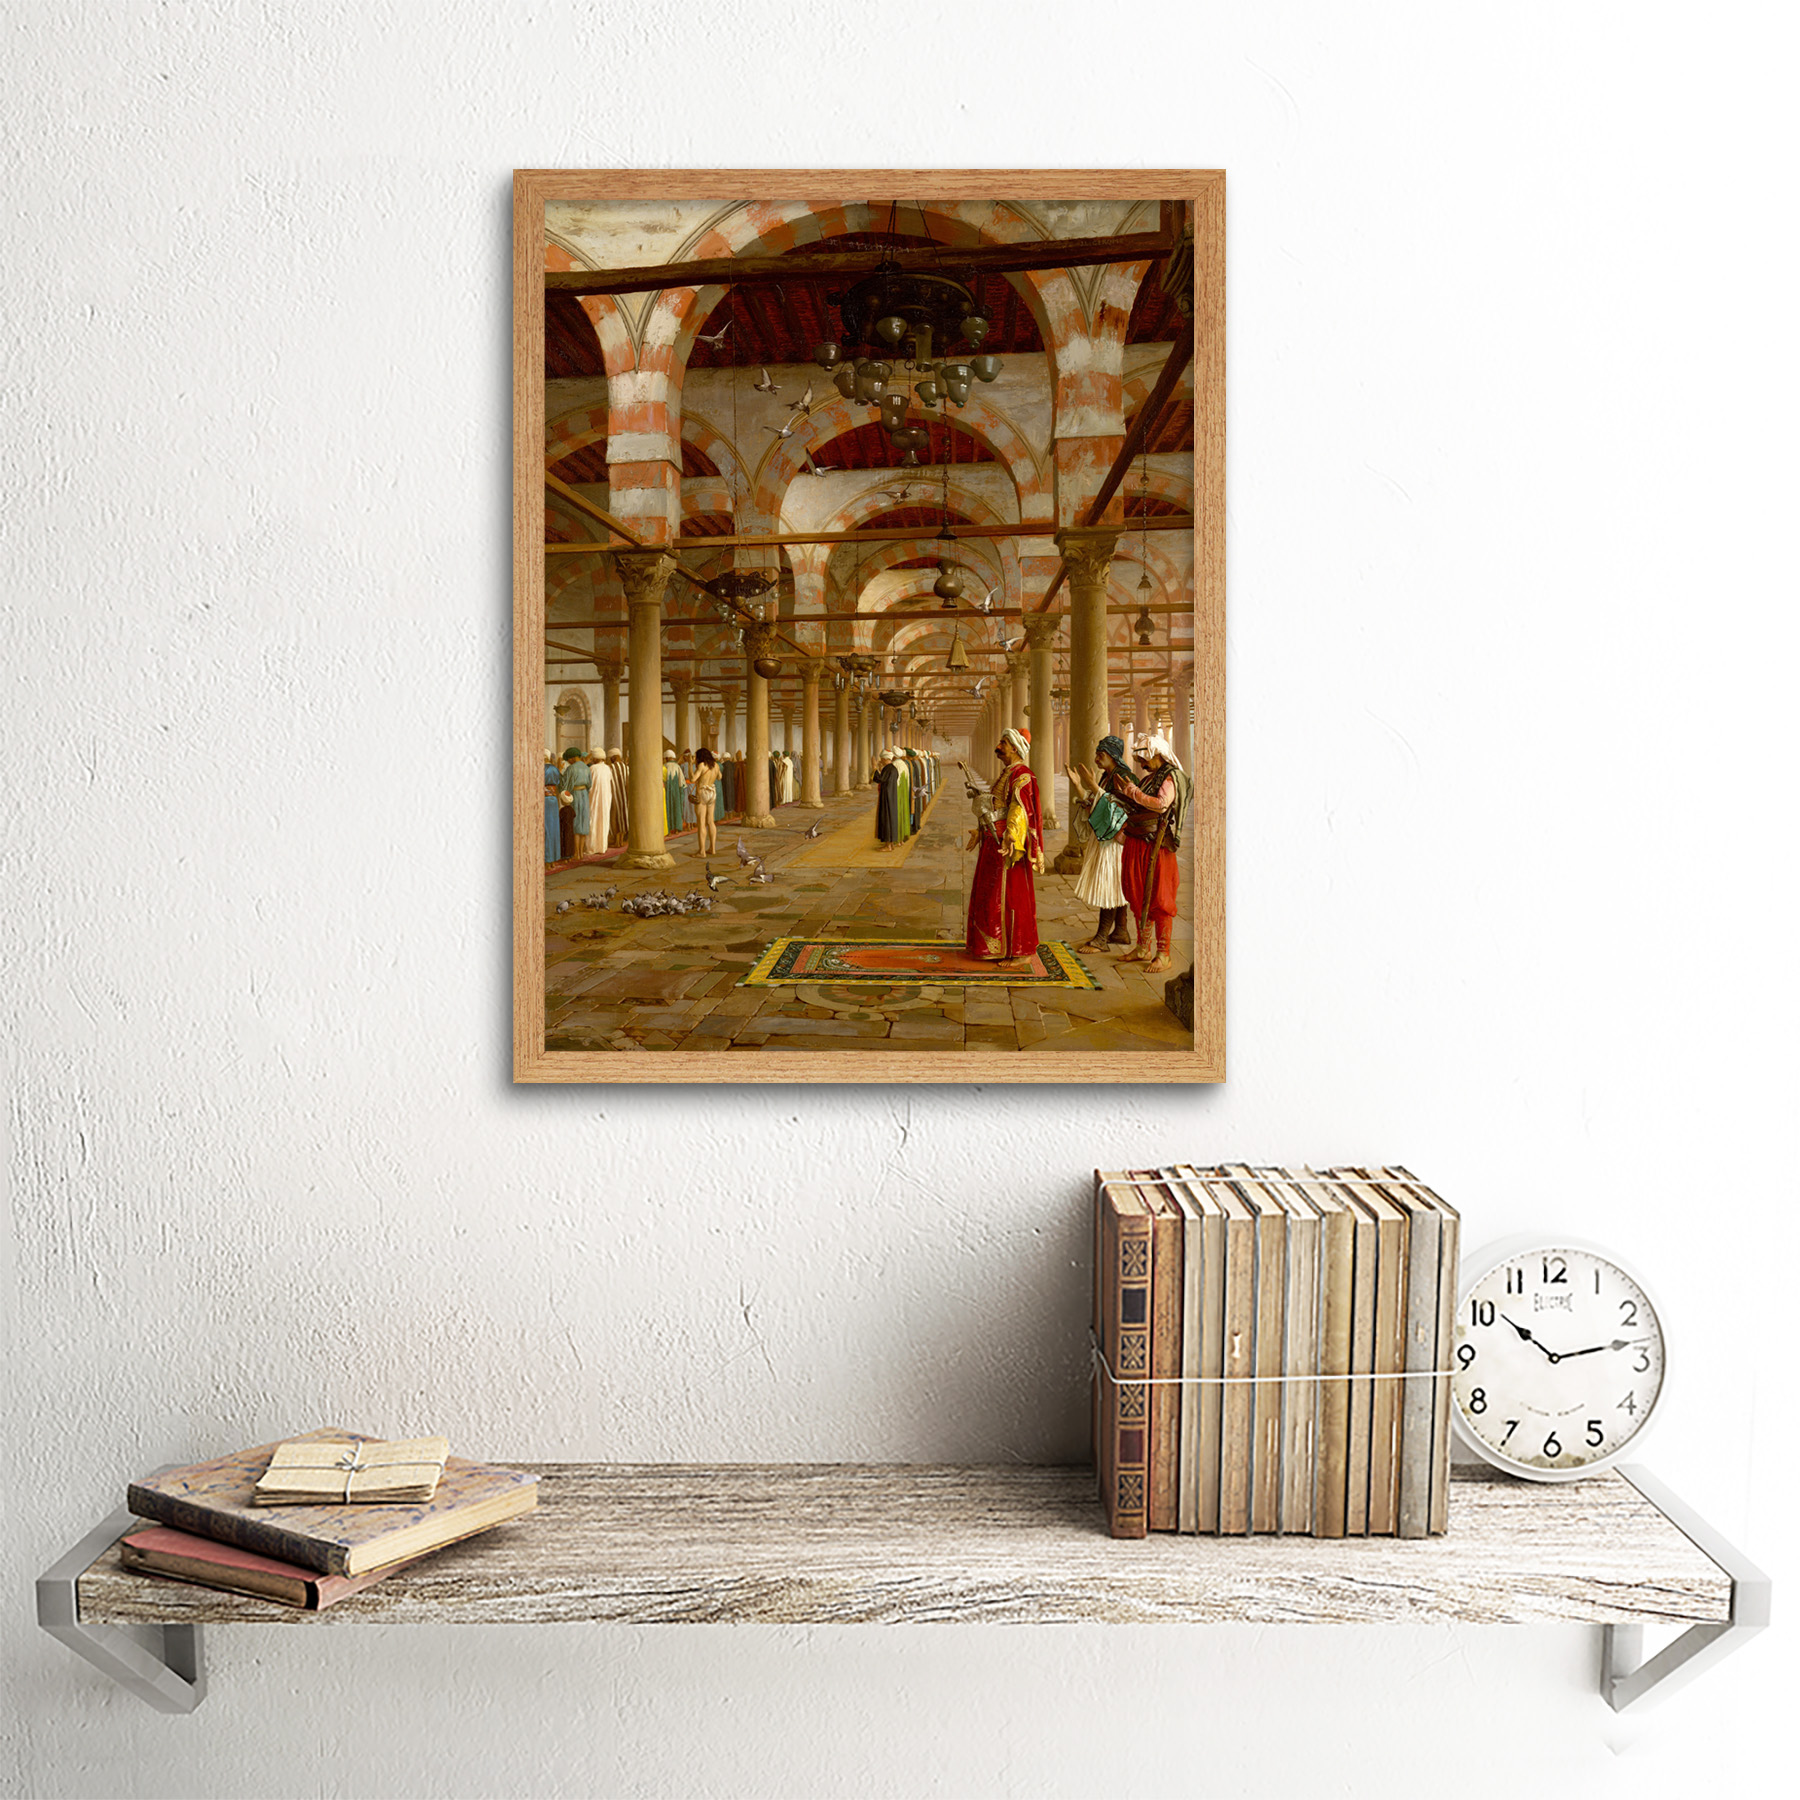 Gerome-Prayer-Mosque-Islamic-Painting-Framed-Wall-Art-Poster thumbnail 13